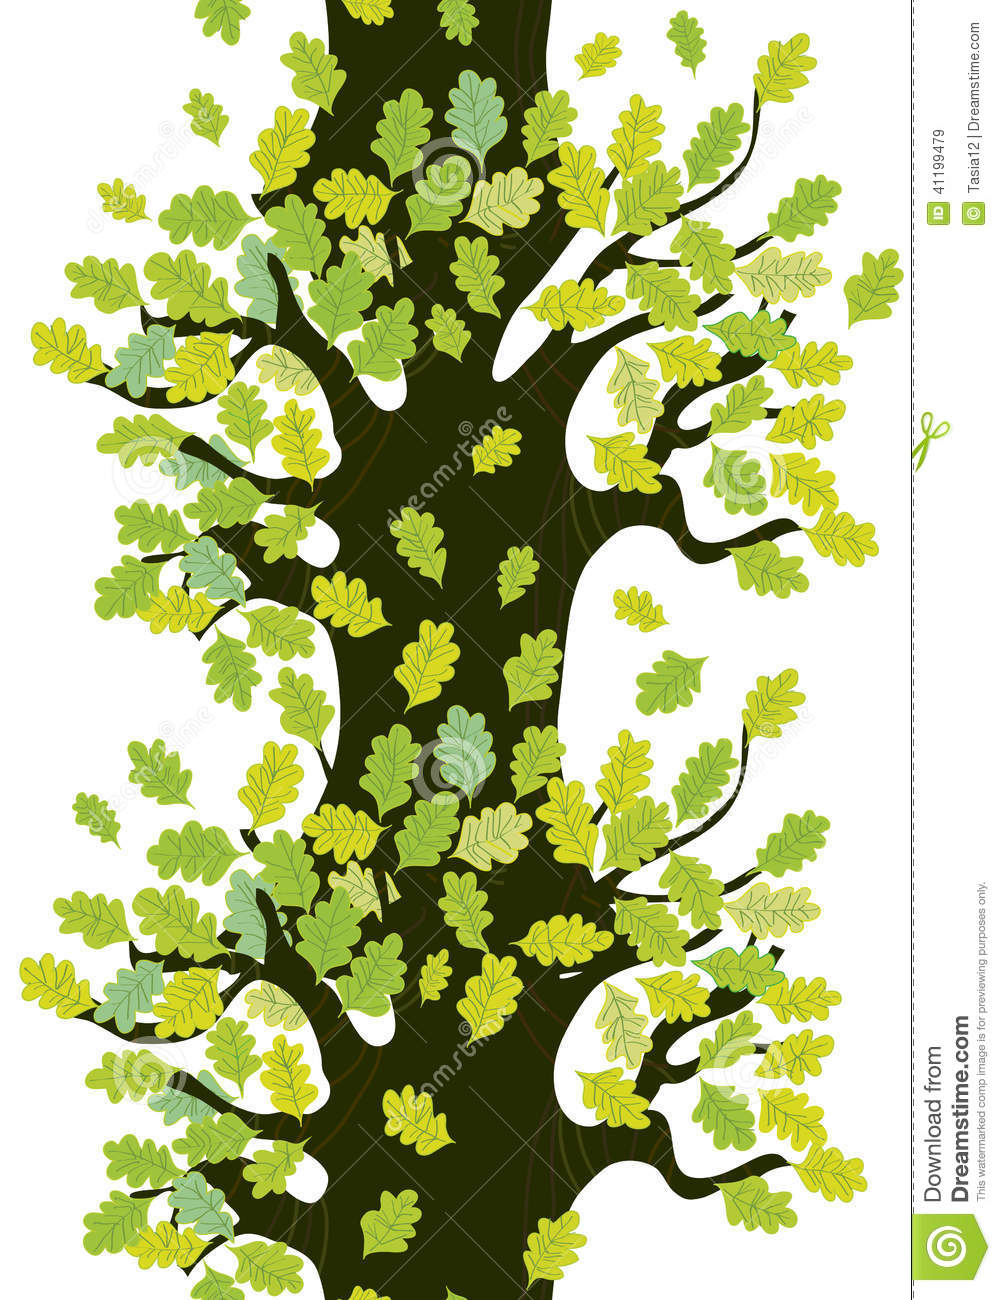 Tree Seamless Border With Oak Leaves Cute Stock Vector - Image: 41199479